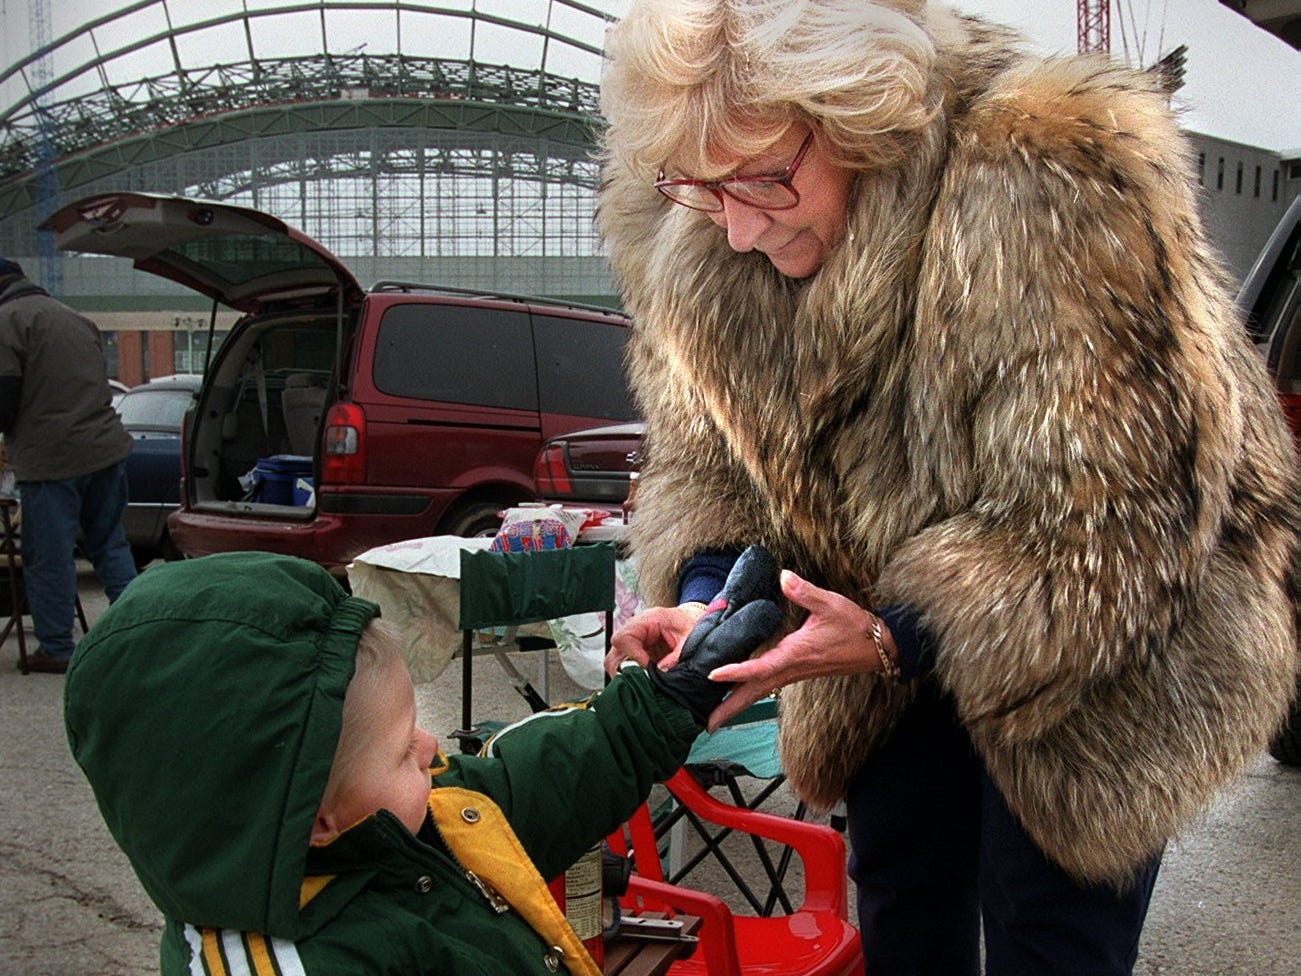 Dressed appropriately for the final opening day at County Stadium, Meredith Bodovinac put mittens on her grandson, Brandon Michalowski, during a tailgate party before the game on April 10, 2000. Miller Park, still under construction, is in the background. In the game, the Milwaukee Brewers beat the Florida Marlins, 4-3.